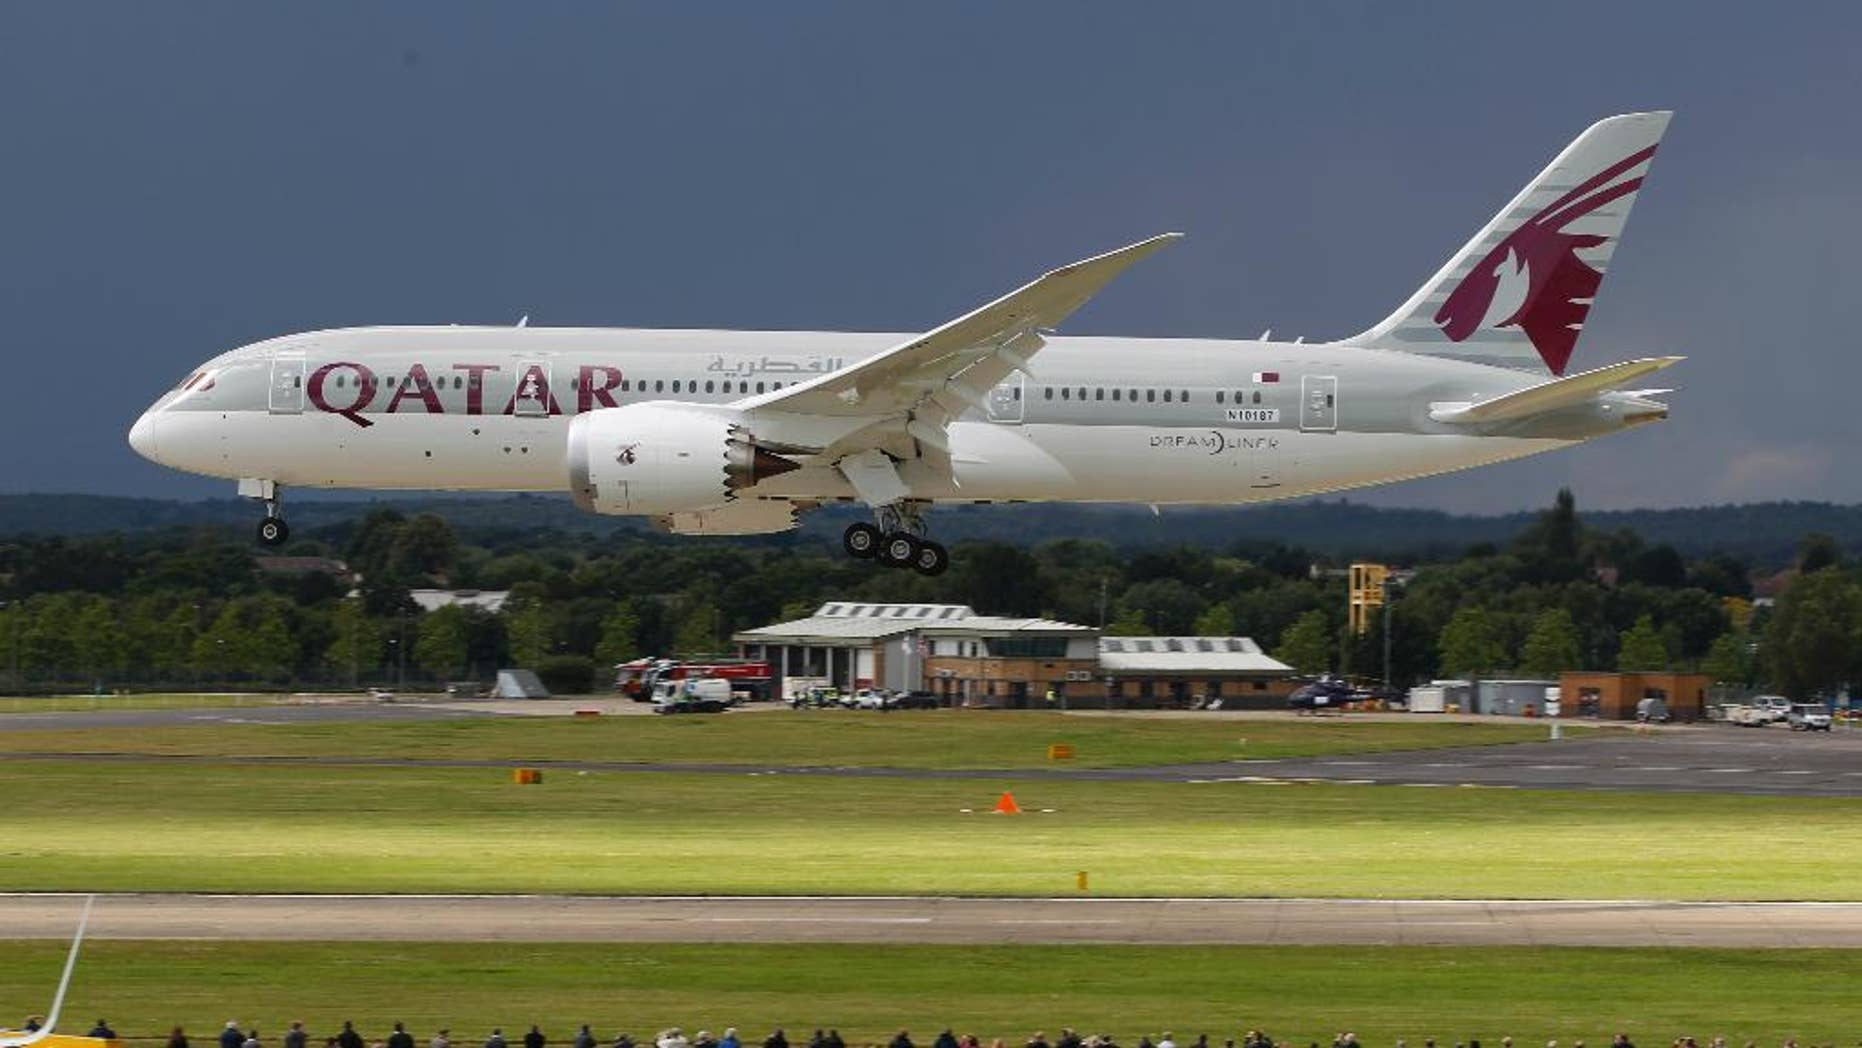 FILE- in this file photo dated Wednesday, July 11, 2012, onlookers watch as a Qatar Airways Boeing 787 Dreamliner lands during an aerial display at the Farnborough International Airshow, in Farnborough, England.  The state-owned Commercial Aircraft Corp. of China, known as Comac, announced plans this week at Farnborough airshow 2016, for a wide-body aircraft to be built with state-owned Russian maker United Aircraft Corporation, striking at the heart of the market leaders Airbus and Boeing. (AP Photo/Lefteris Pitarakis, FILE)